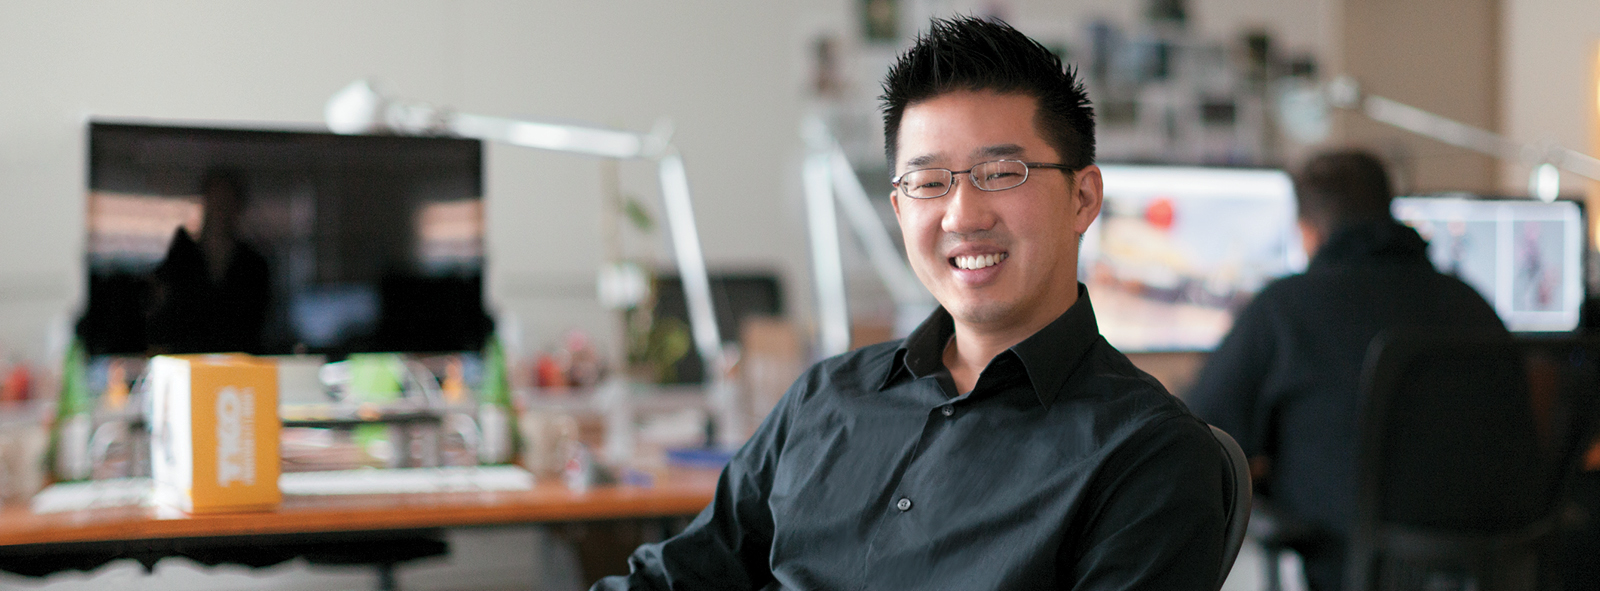 Select to access video of First Republic Tech client(s) Kevin Chou